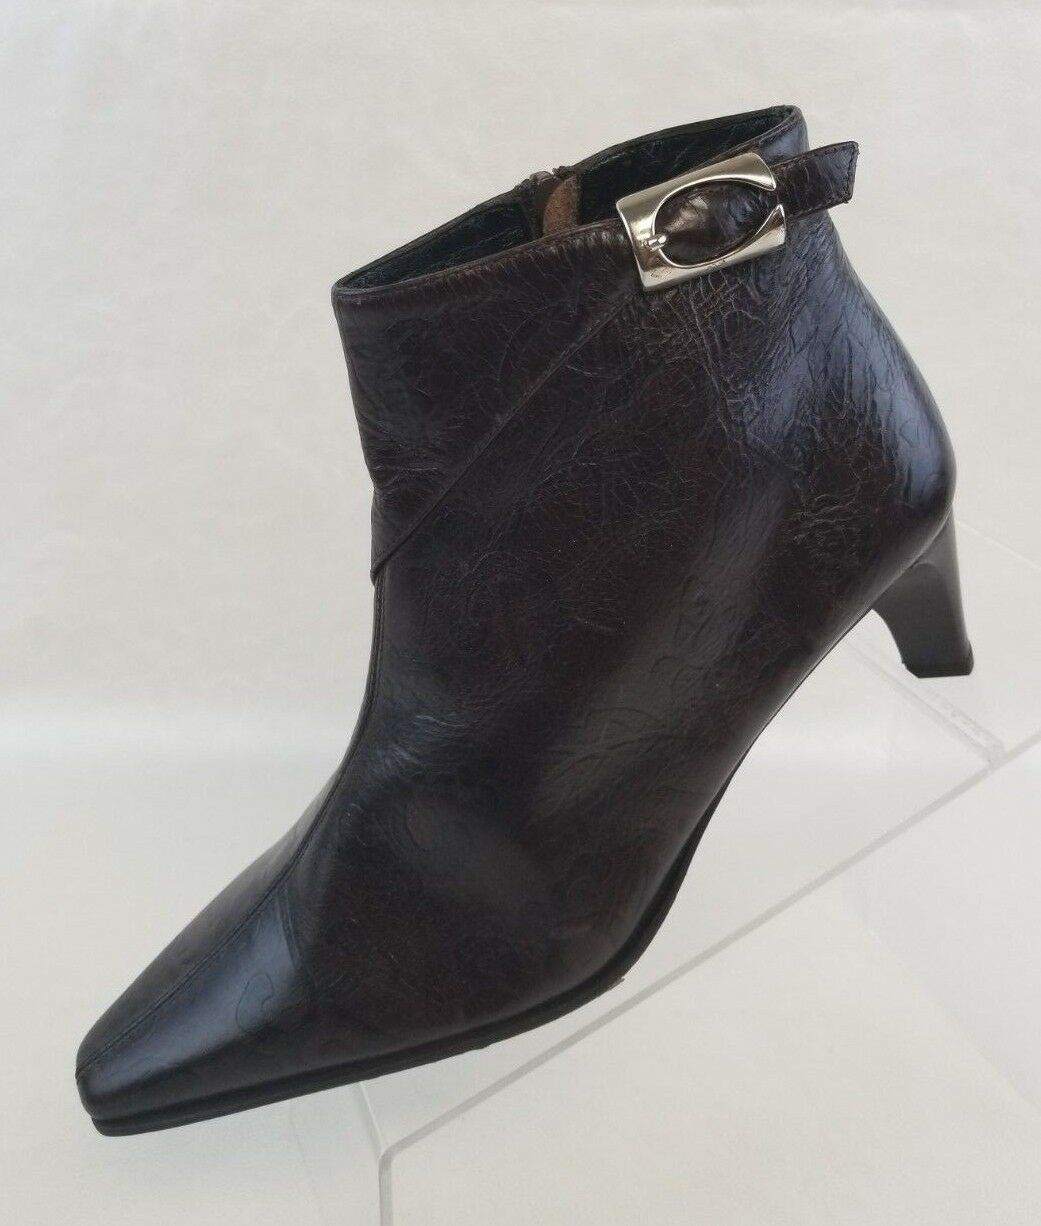 Phyllis Poland Ankle Boots Pointy Toe Zip Womens Brown Leather shoes Size 7B NEW